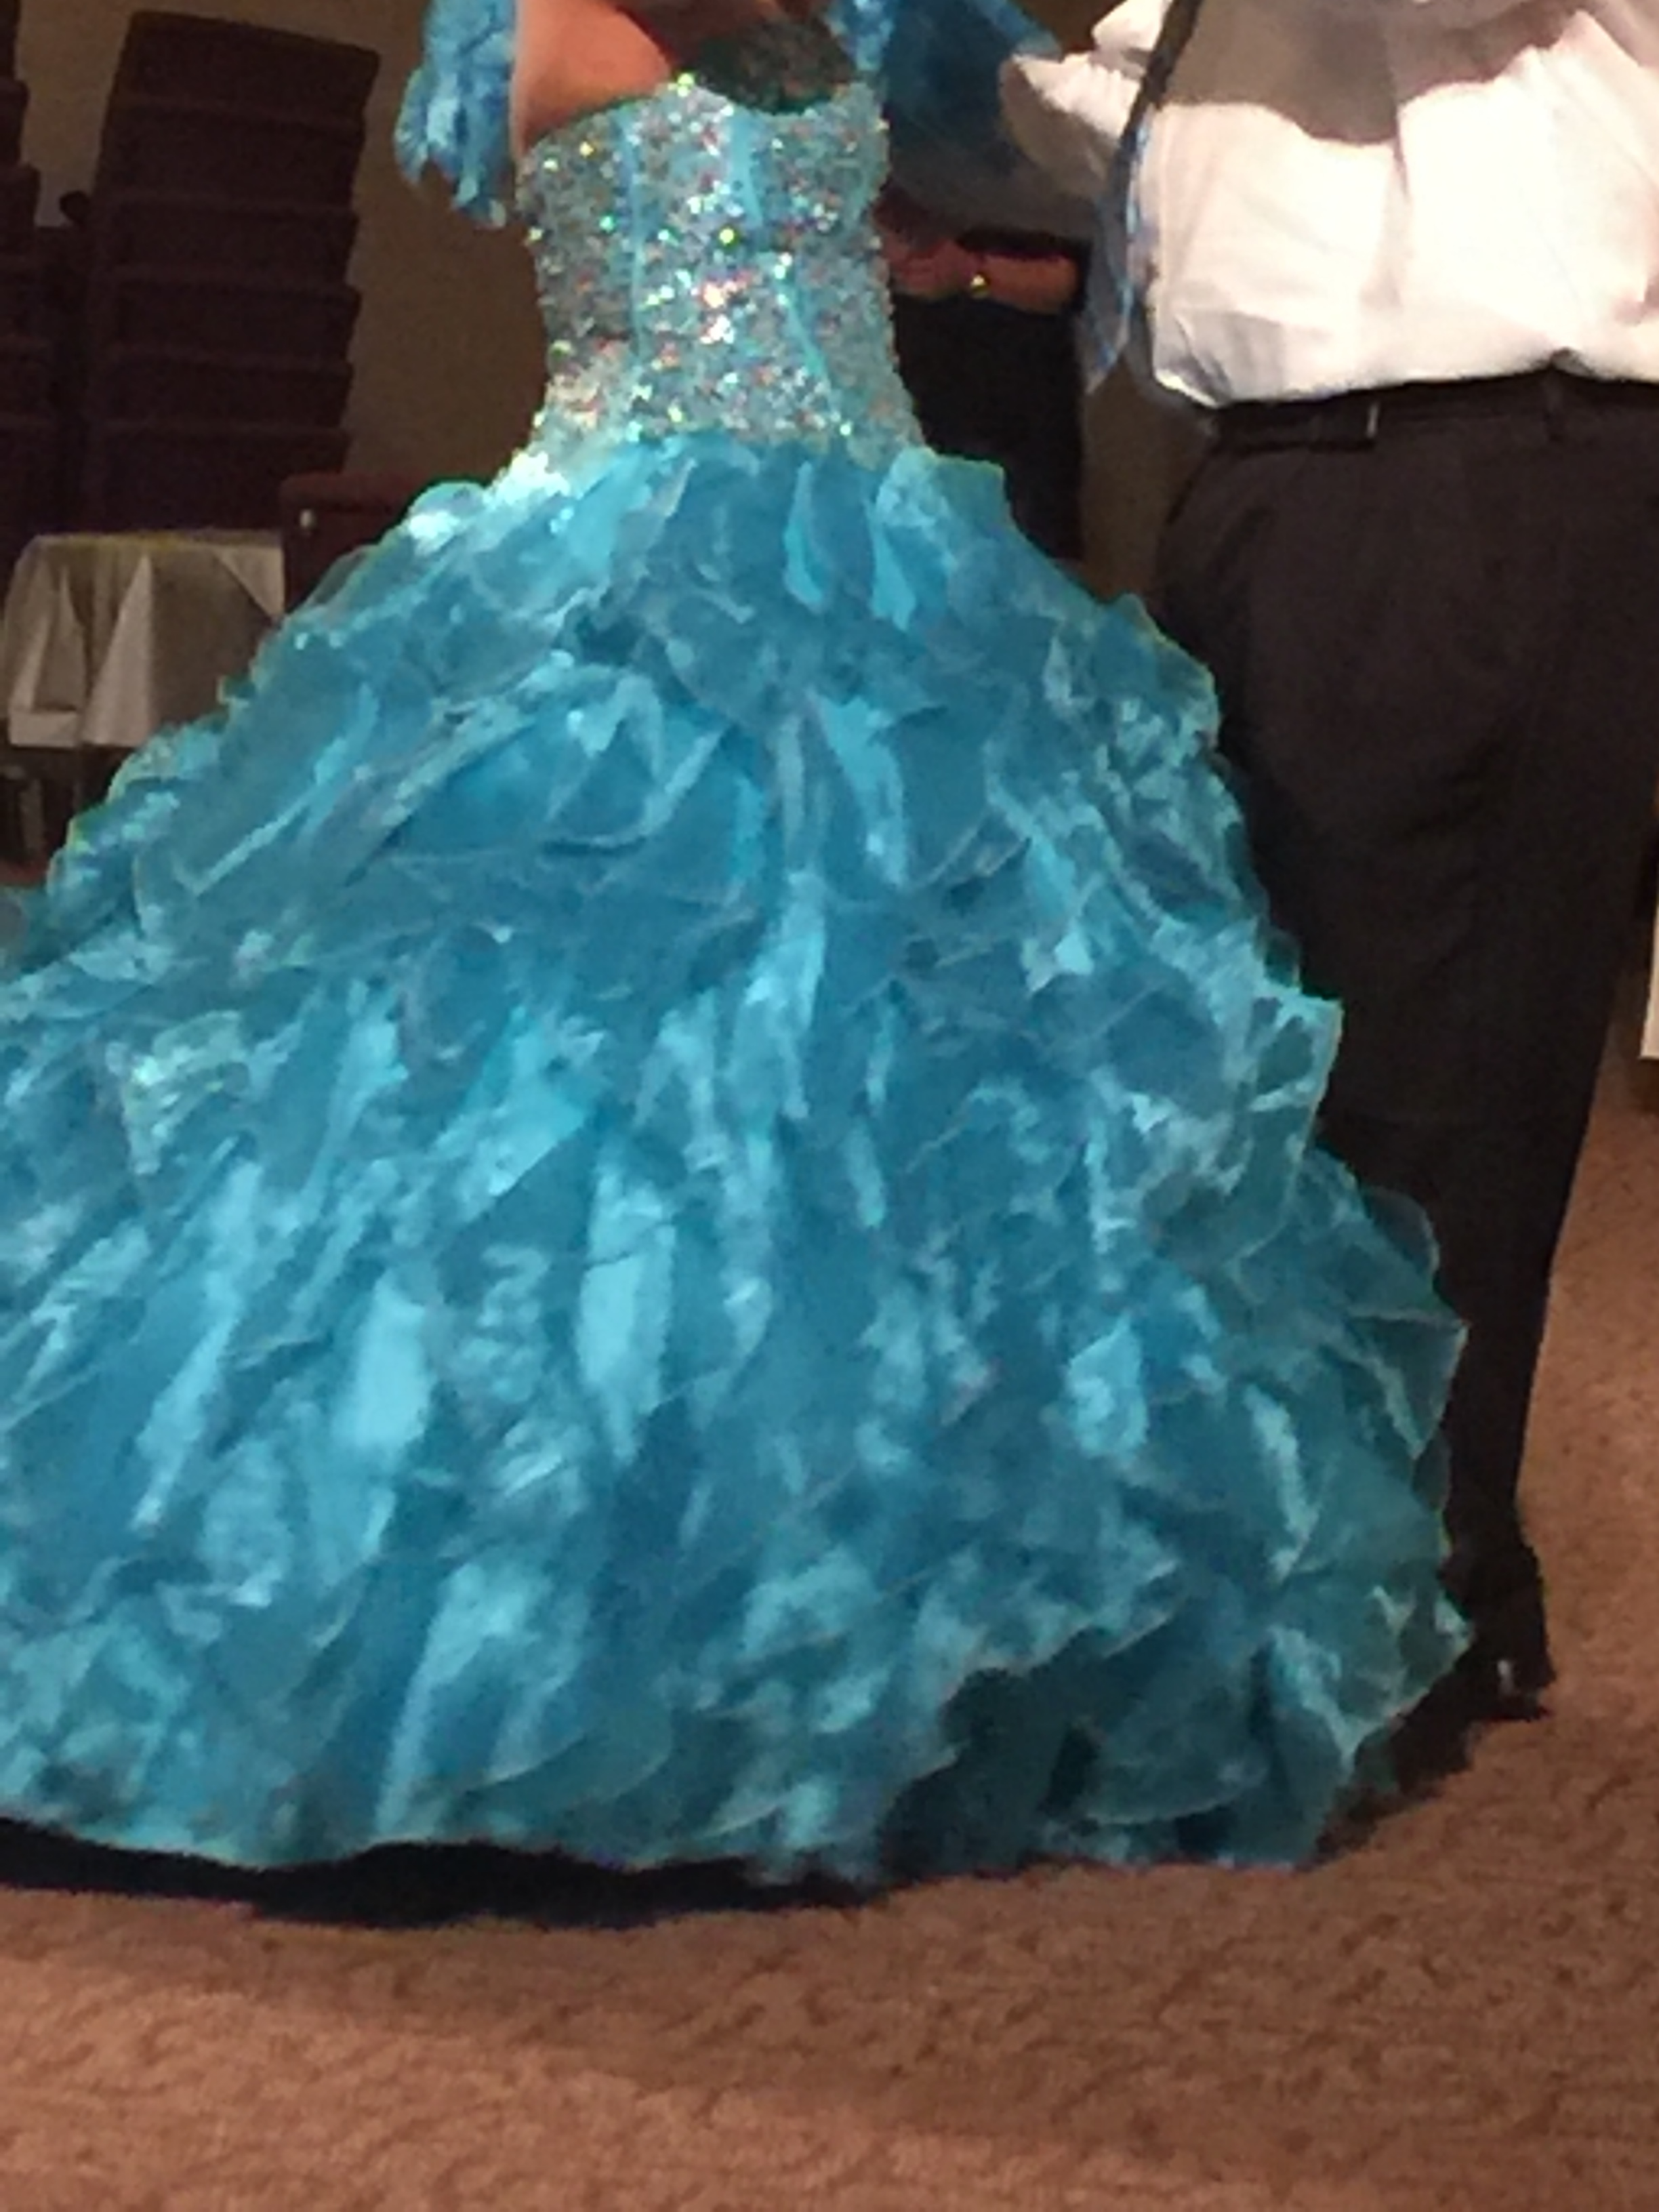 Quinceanera! - CPCH strives to keep our resident's cultural traditions. Recently, one of our girls celebrated her fifteenth birthday with a Quinceanera. This is a Latin tradition held throughout the America's and beyond. She is pictured here during the traditional dance with a beautiful dress provided by caring donors. It was a wonderful evening where we were able to celebrate her, reflect on her accomplishments so far and help her look to the future with hope.THANK YOU TO ALL THE DONORS AND VOLUNTEERS WHO HELPED MAKE THIS A NIGHT TO REMEMBER!